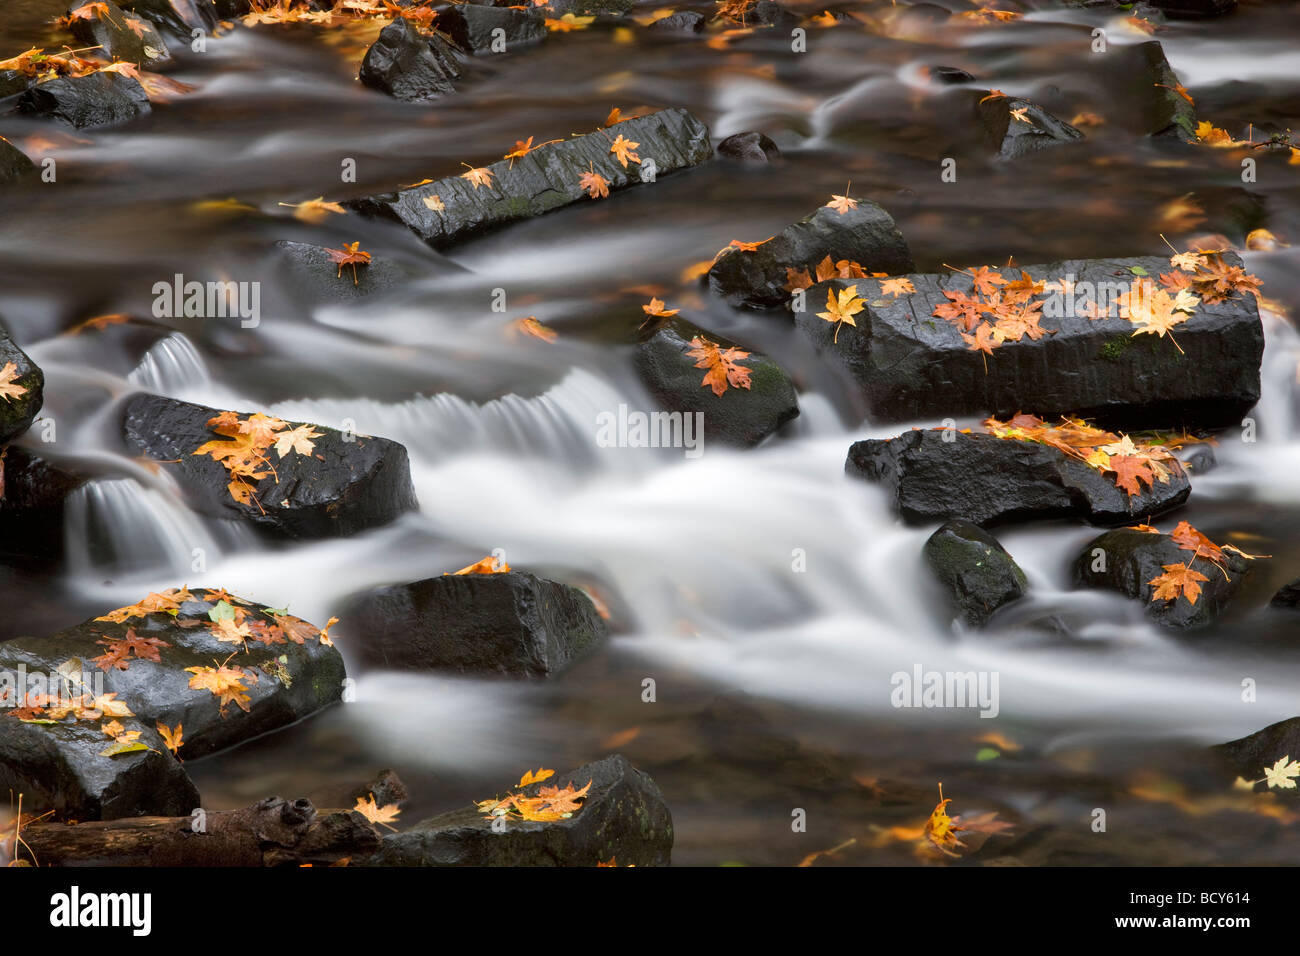 Fallen maple leaves in Bridal Veil Creek Columbia River Gorge National Scenic Area Oregon - Stock Image